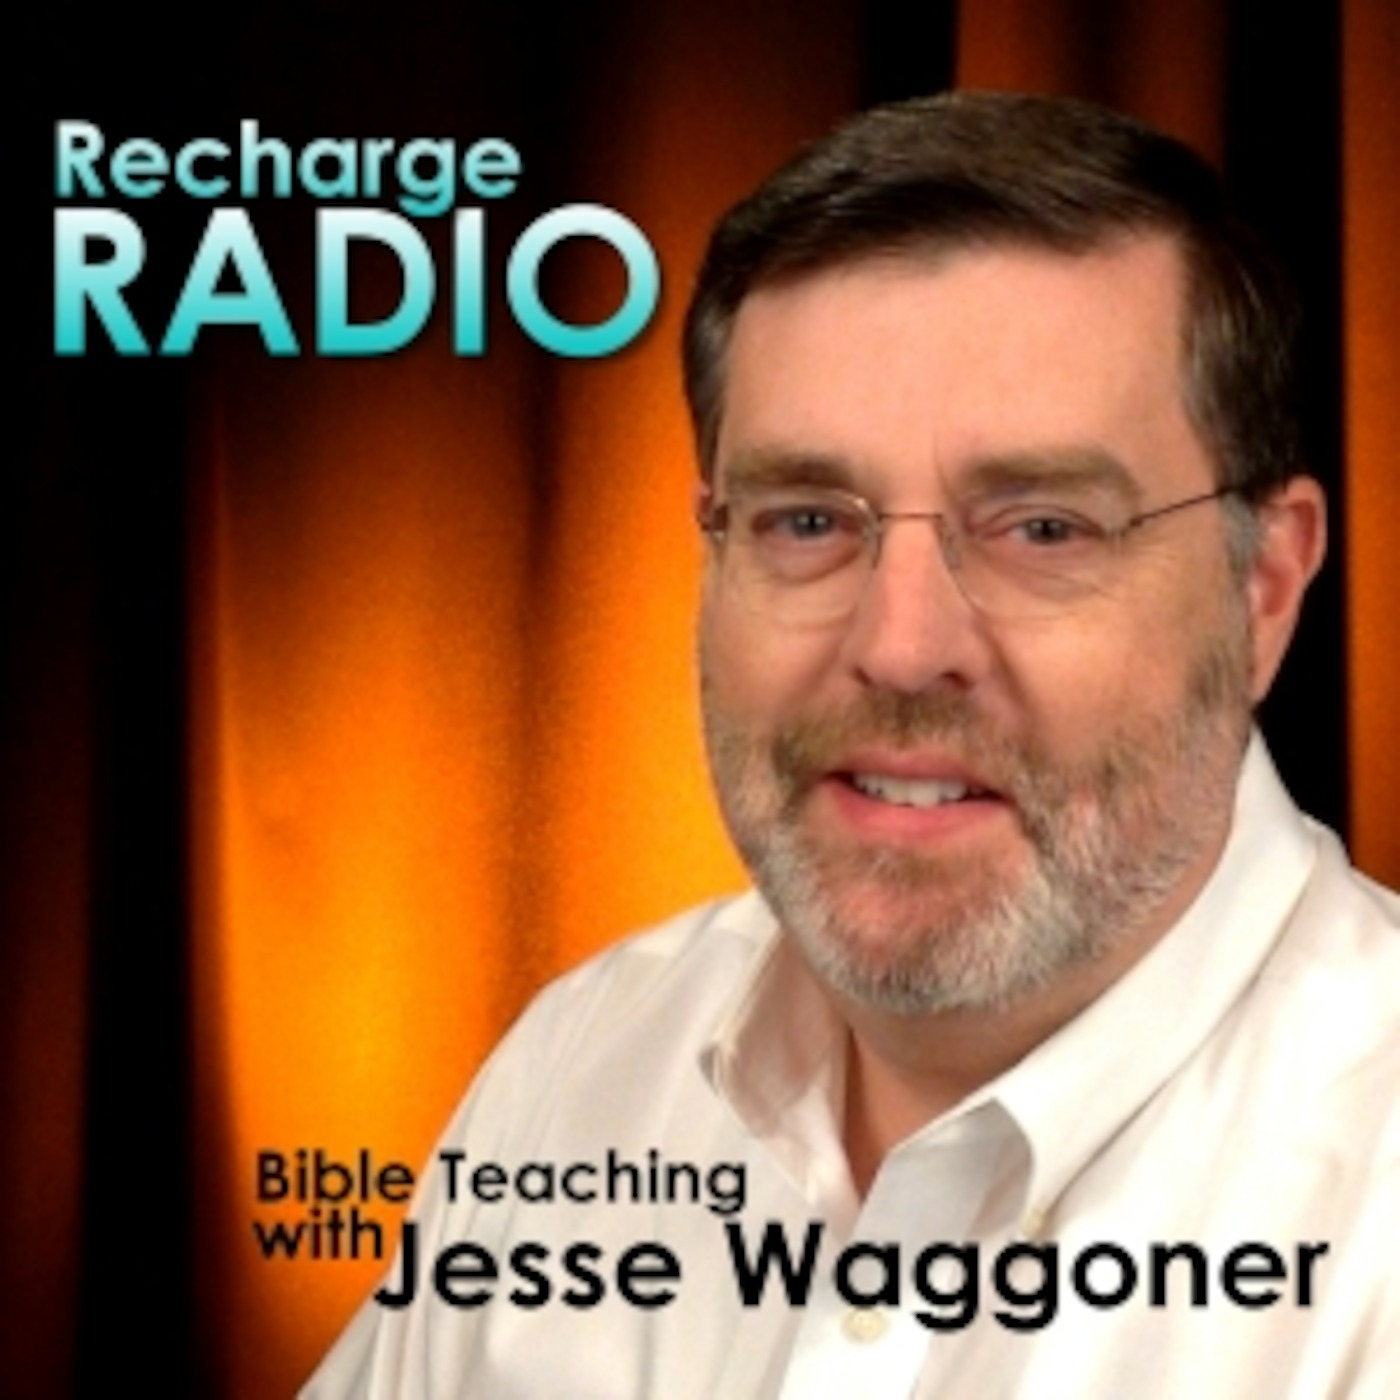 Recharge Radio - with Jesse Waggoner